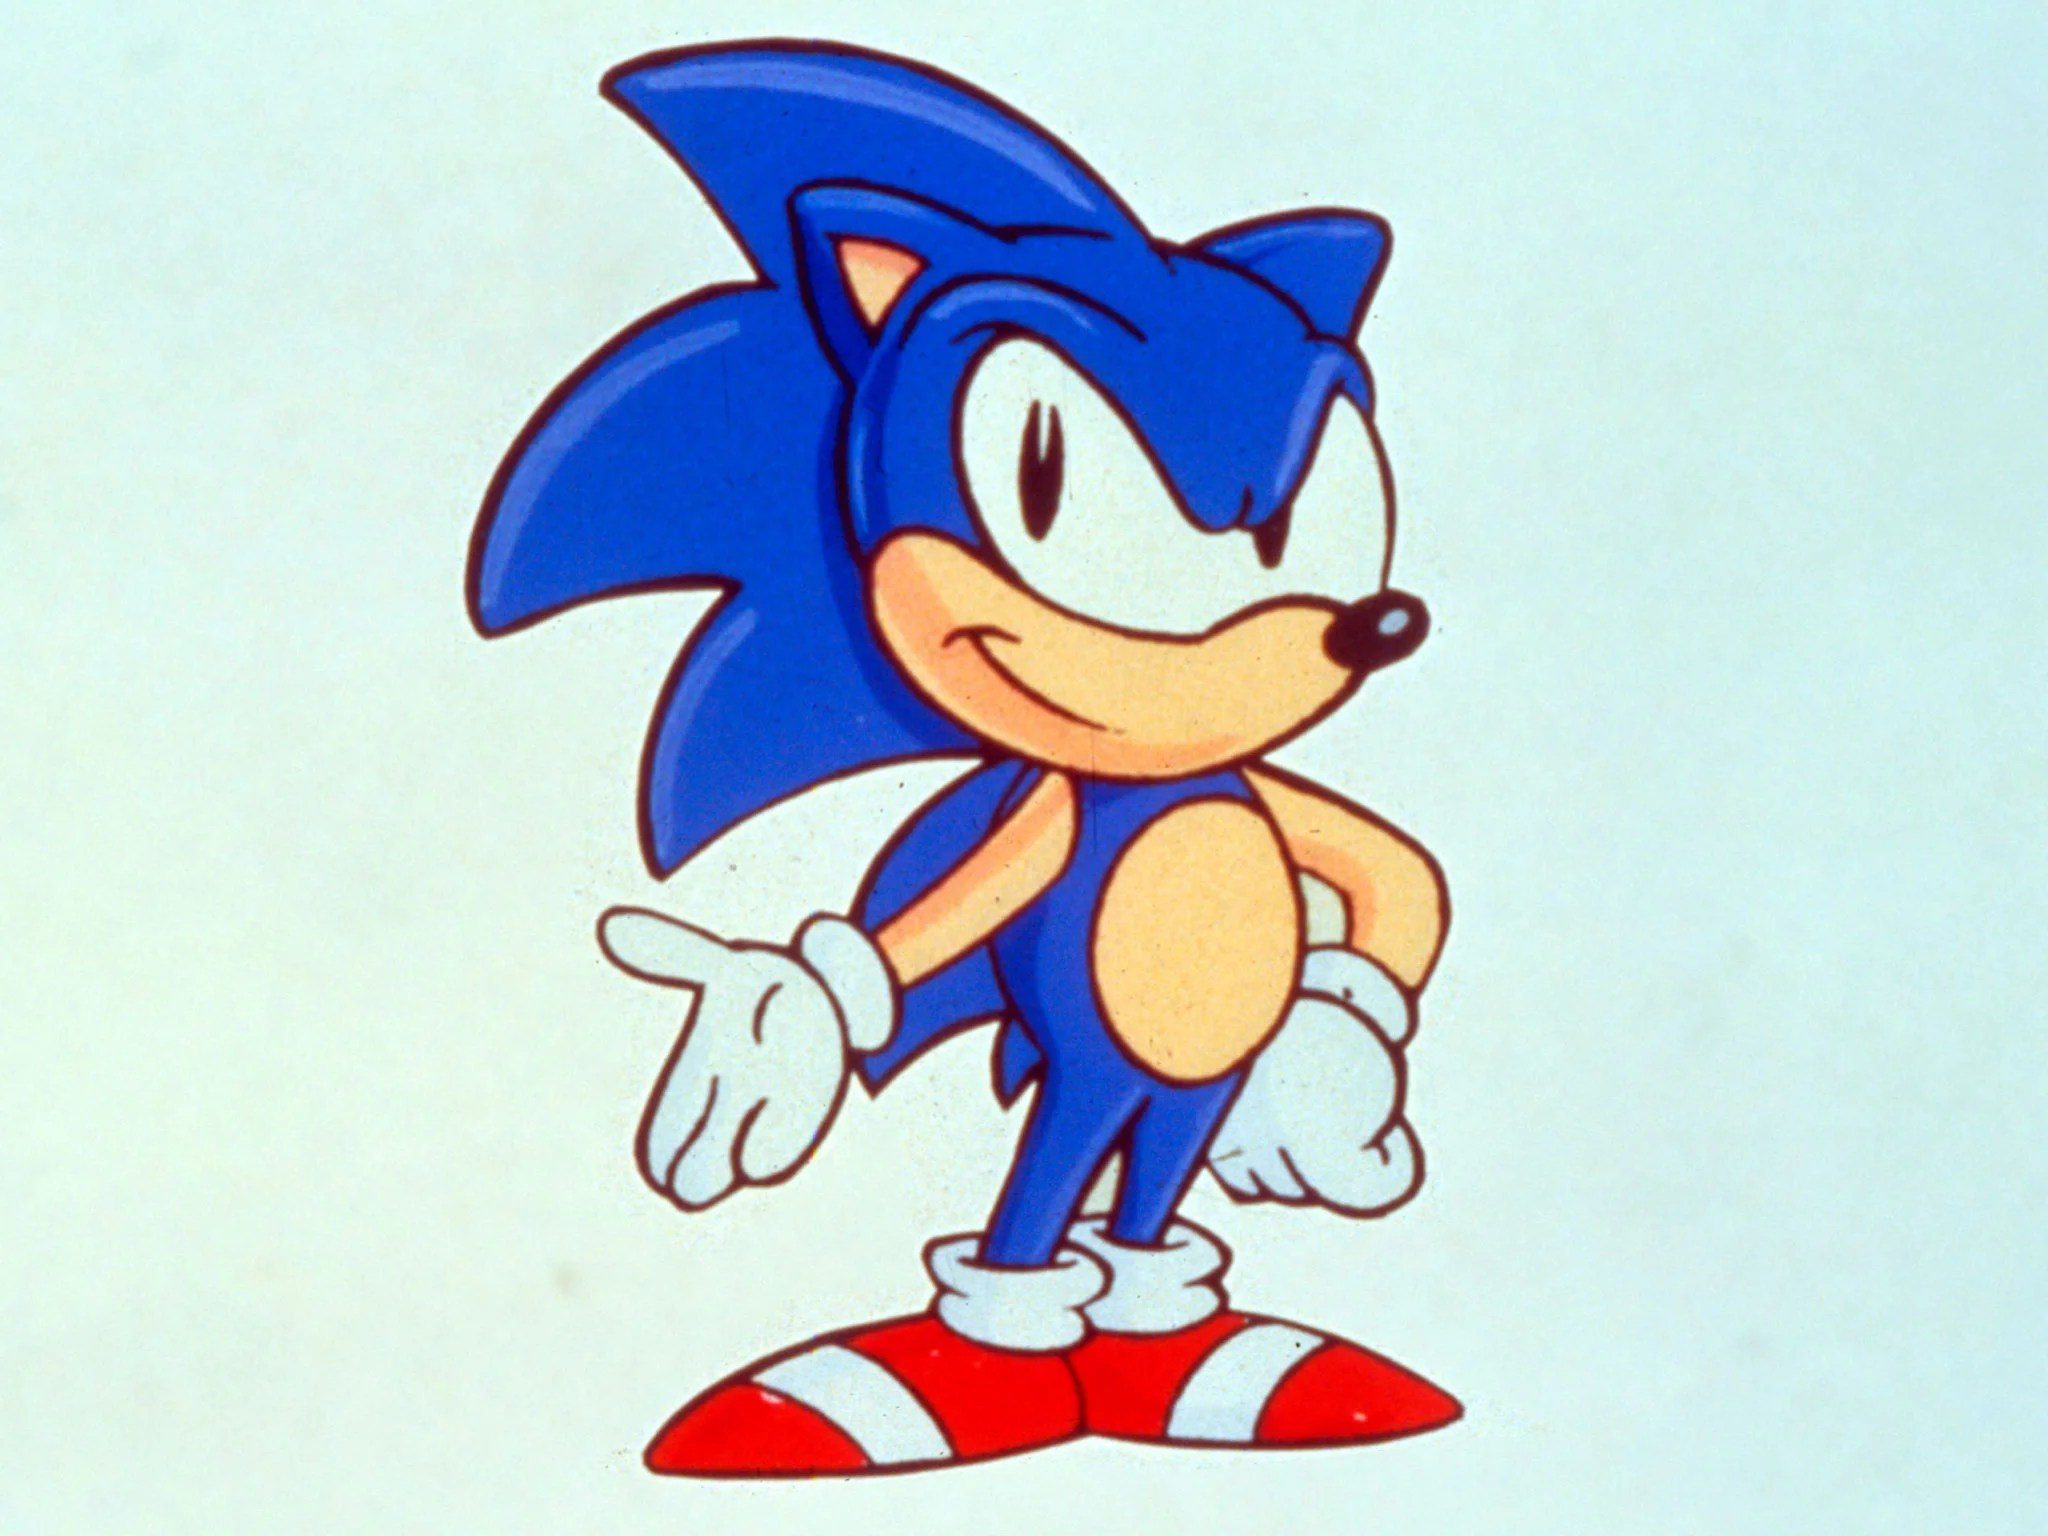 Sonic The Hedgehog Movie Fast And Furious Producer